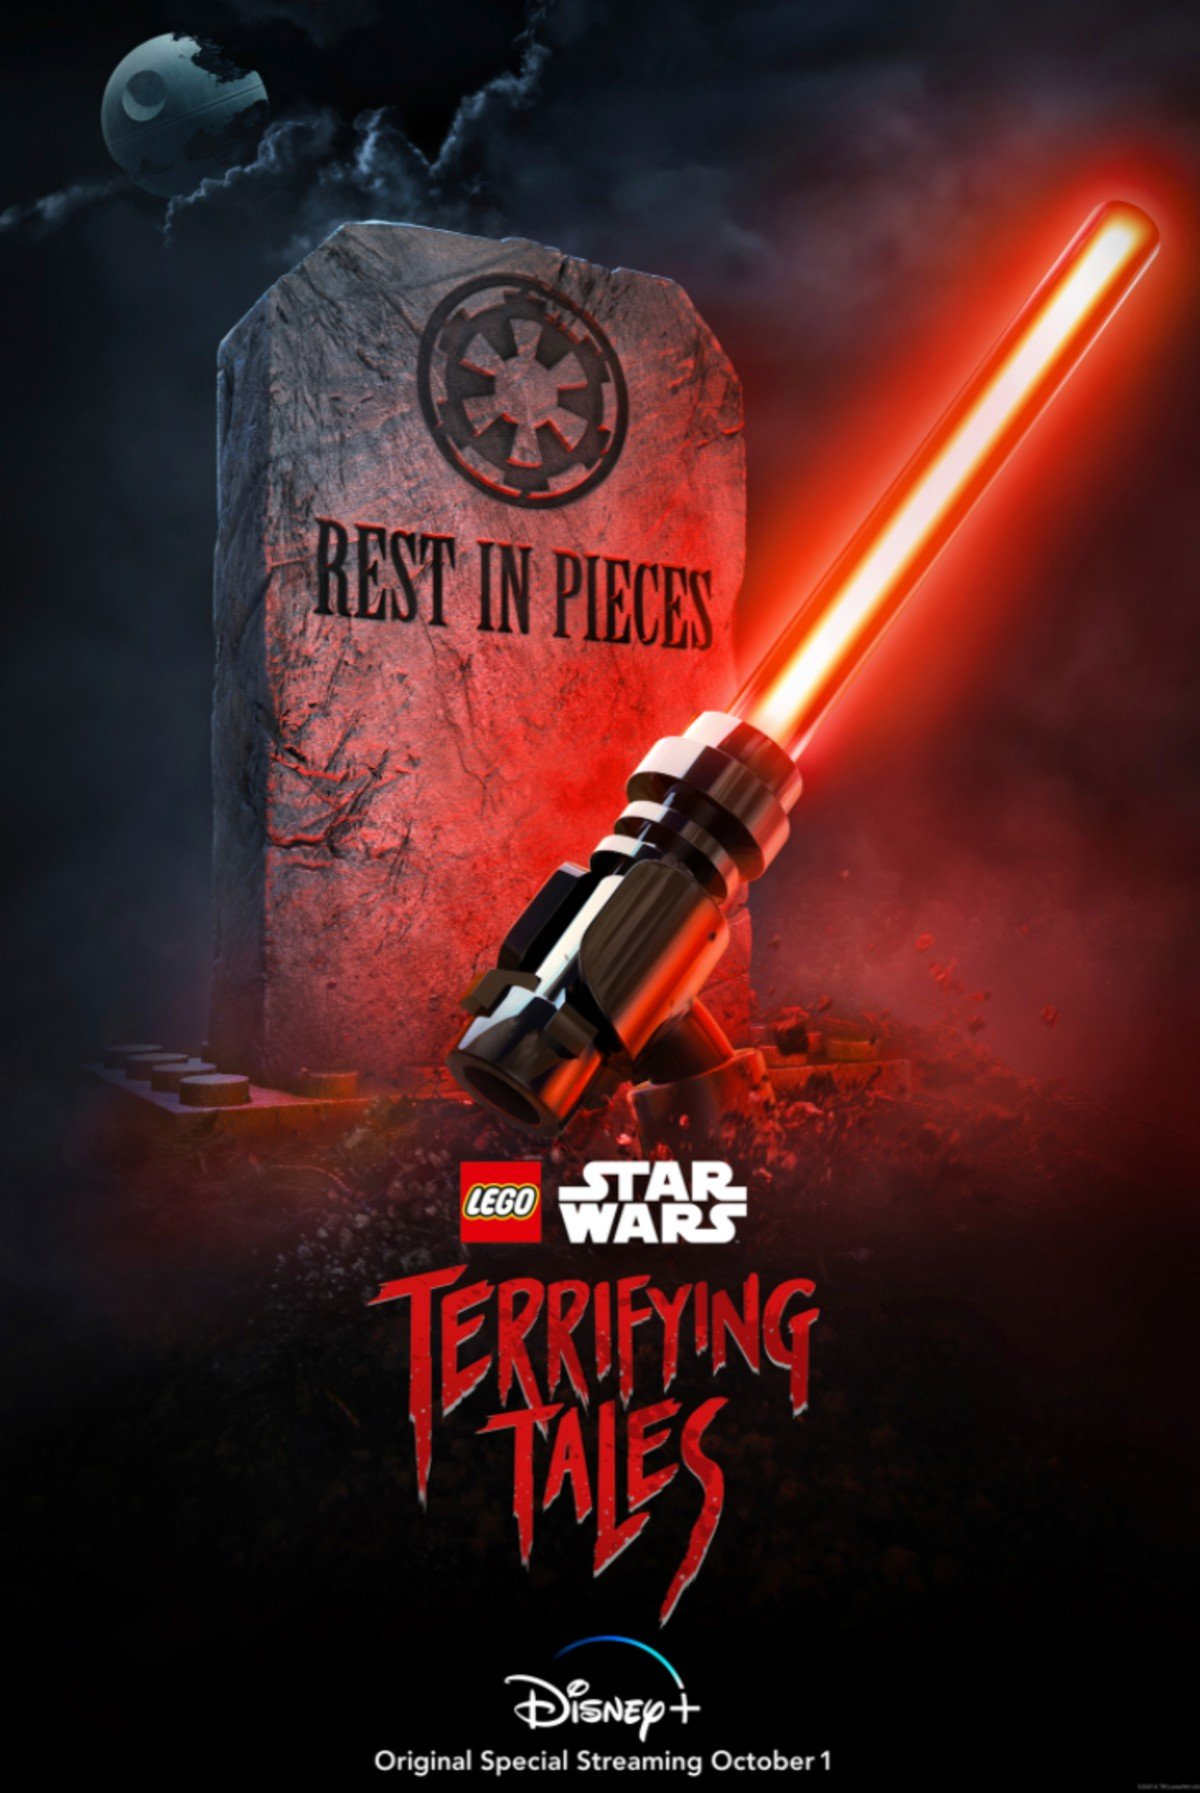 Star Wars Terrifying Tales poster